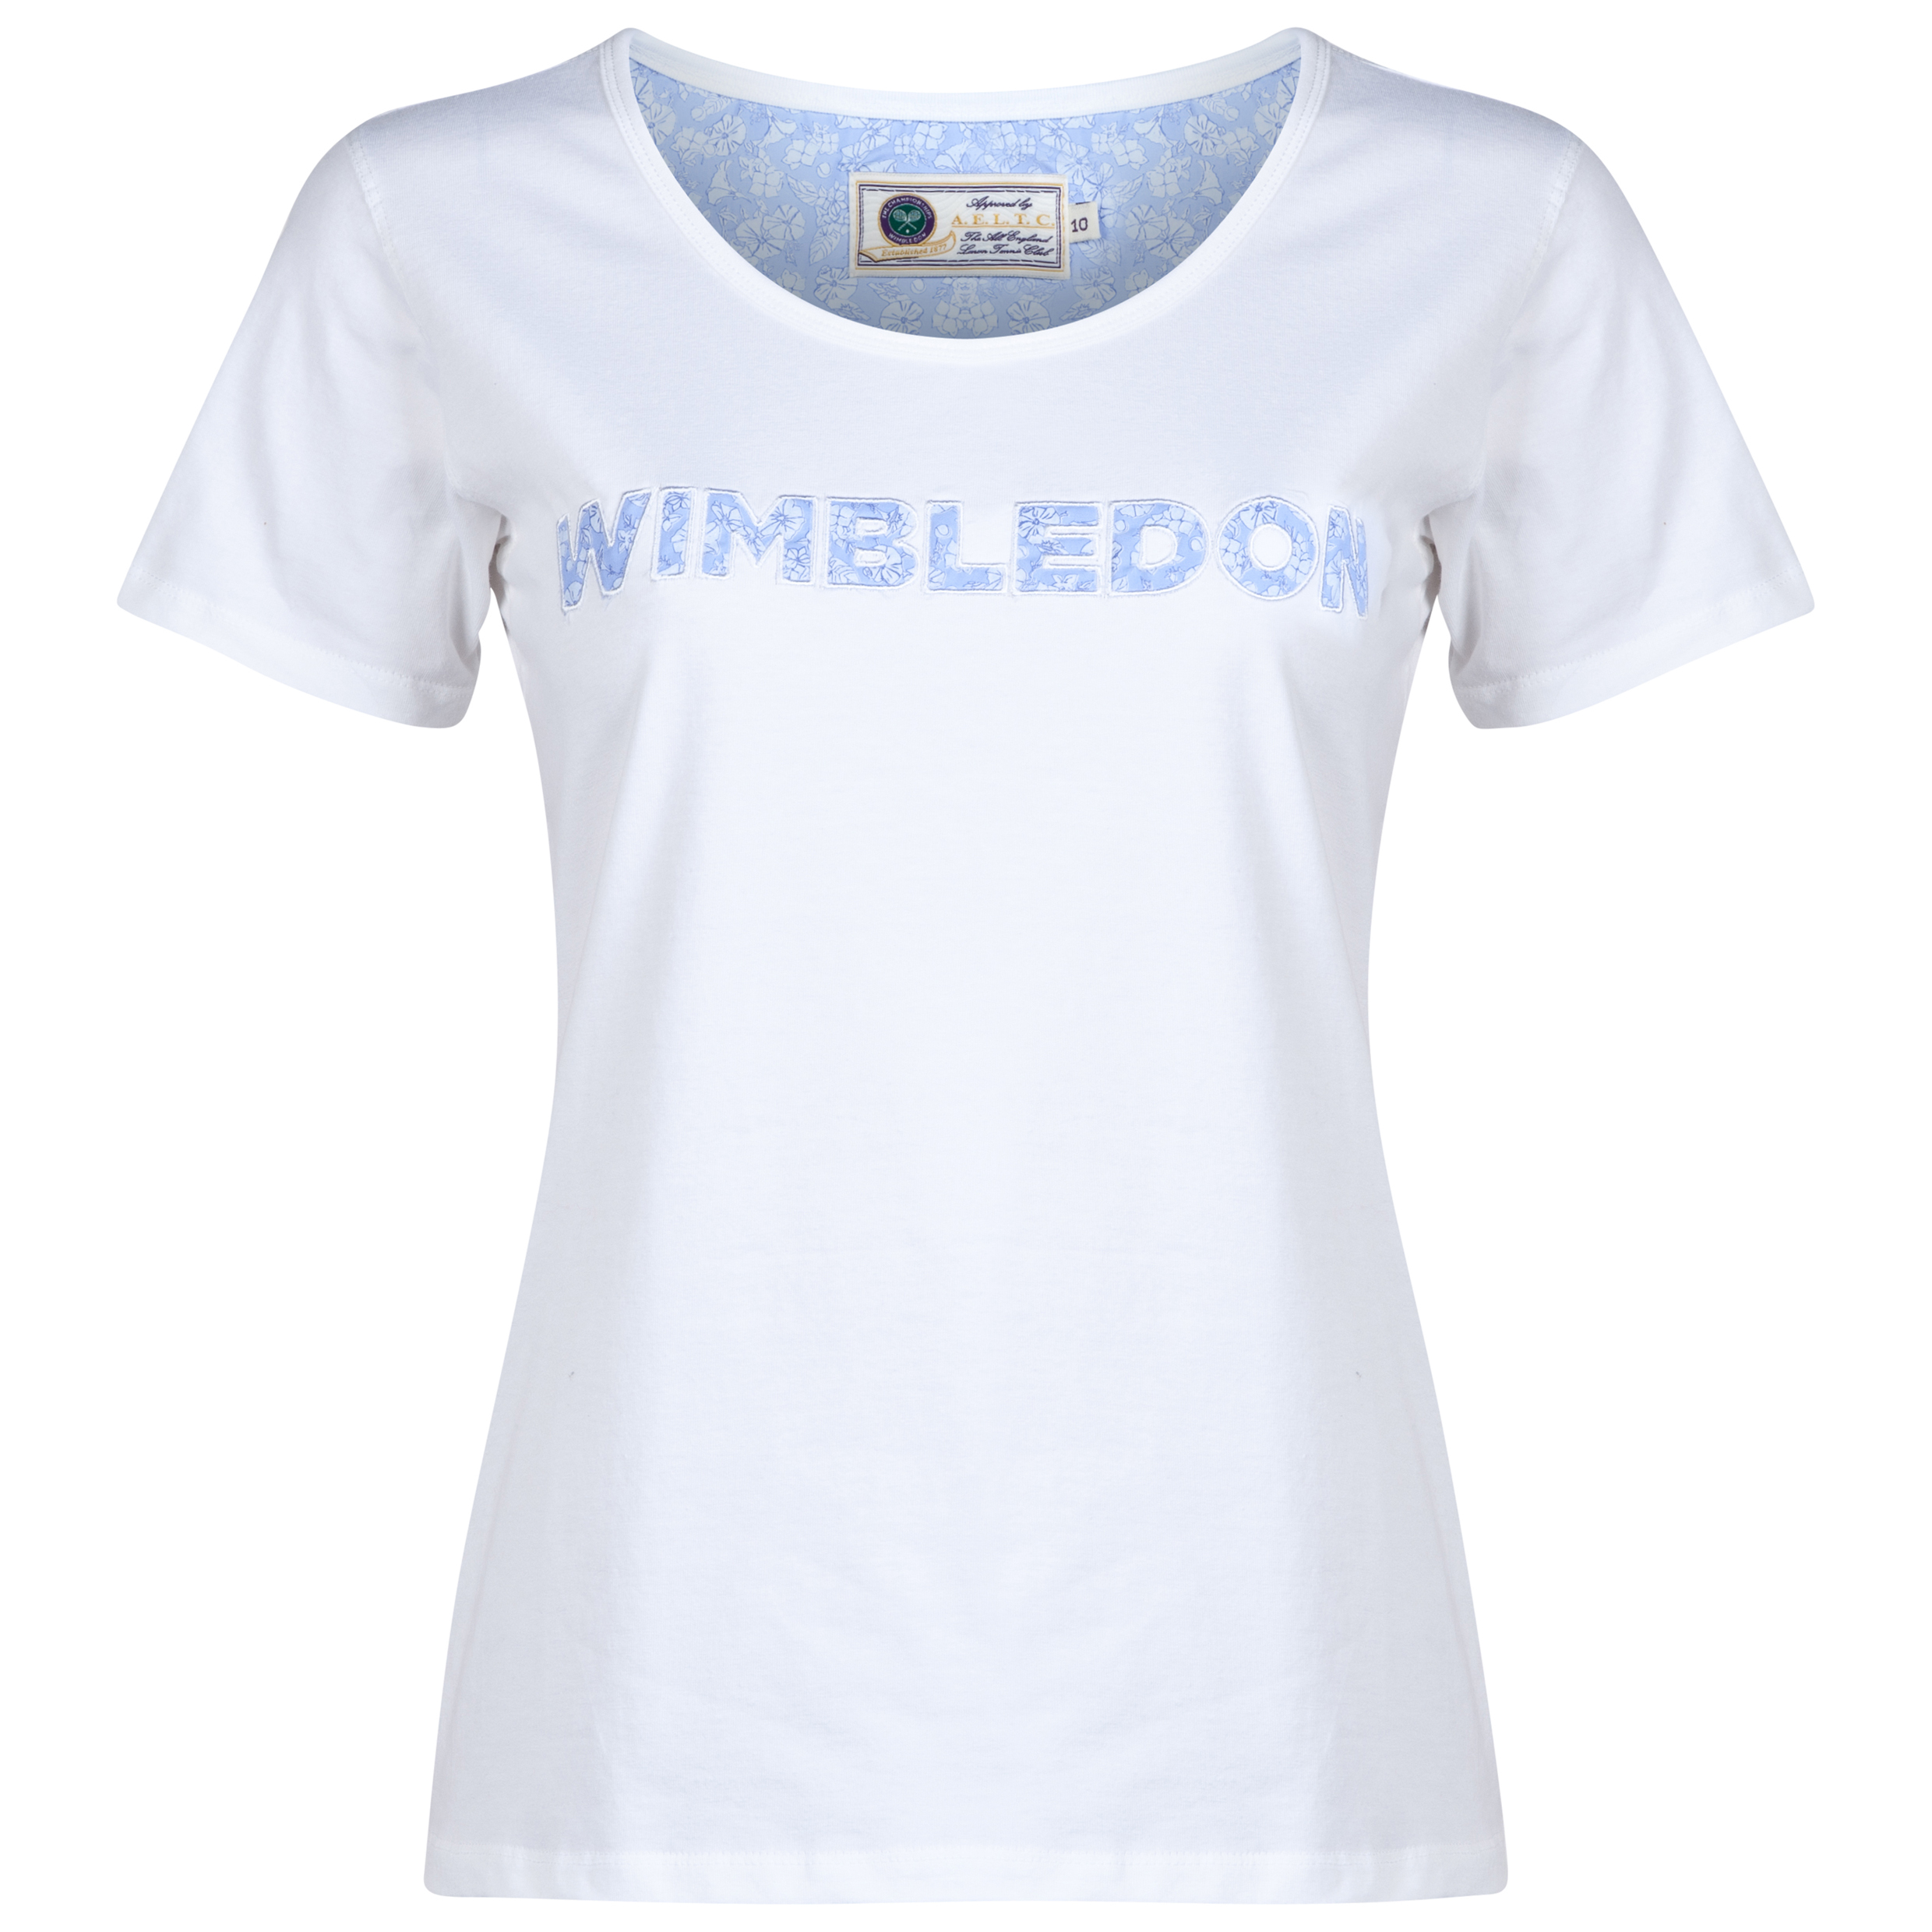 Wimbledon Floral Print Applique T-Shirt - Womens White